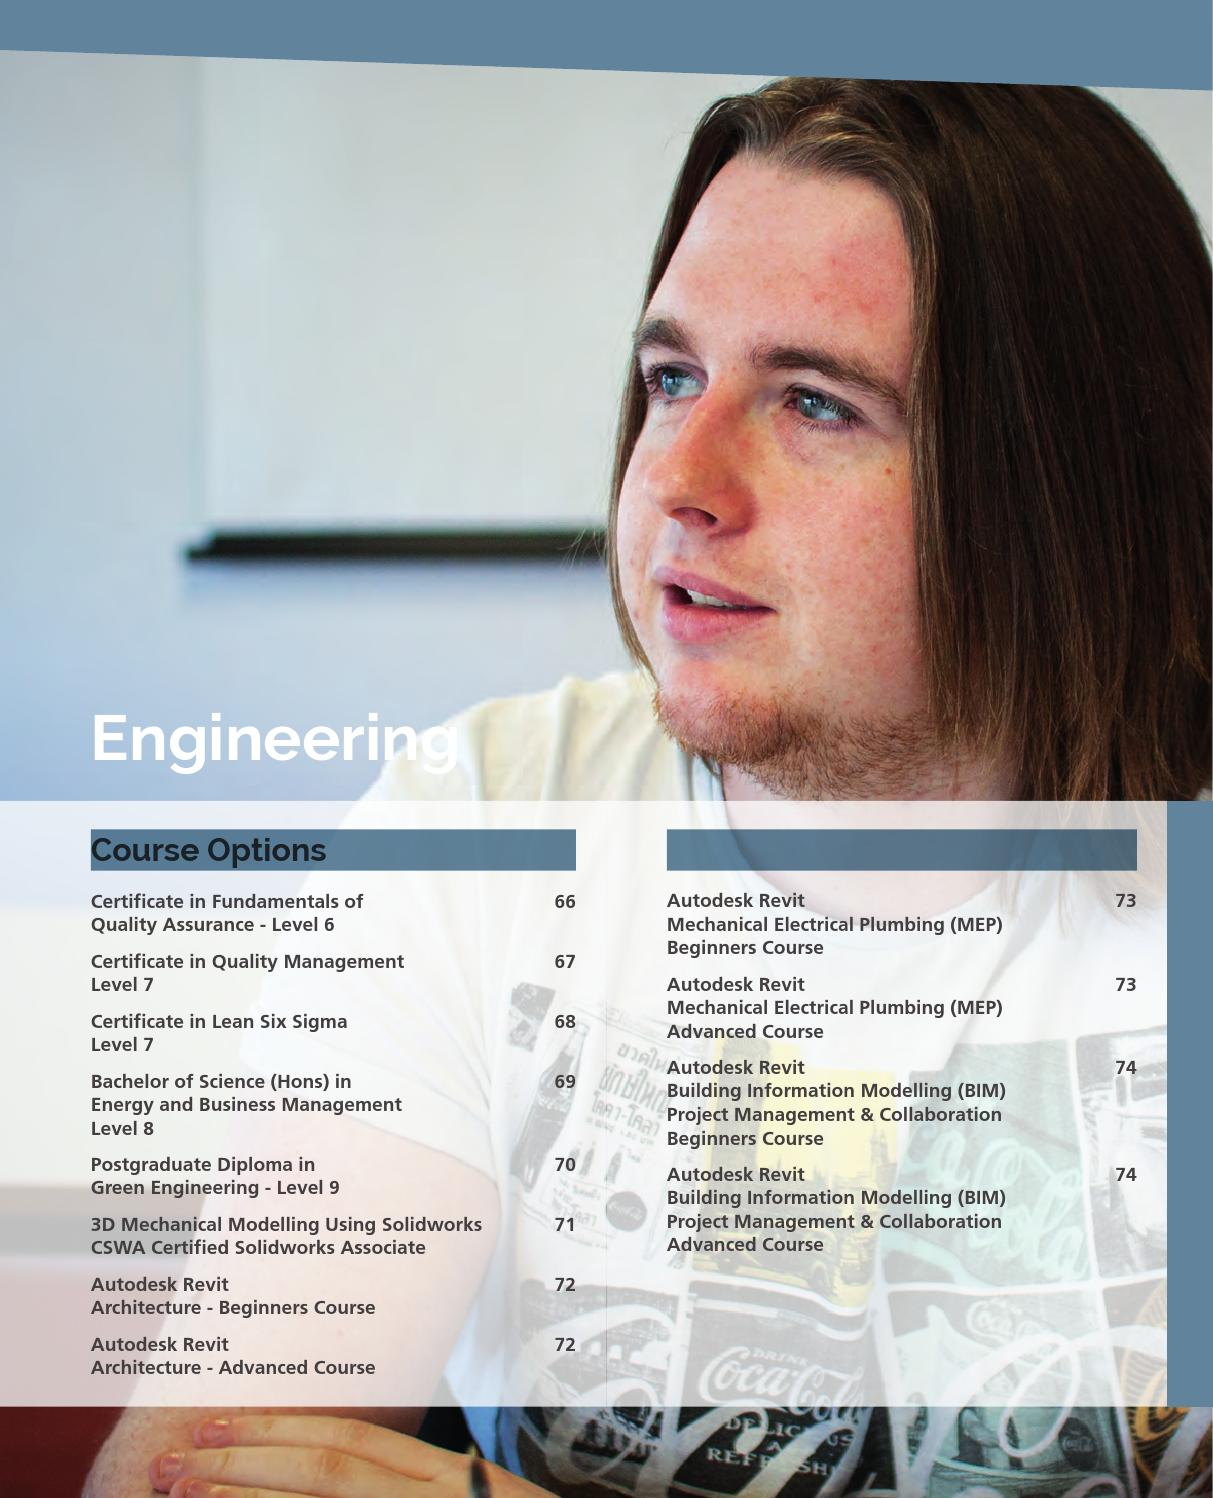 AIT lifelong learning prospectus 2015 by Athlone Institute